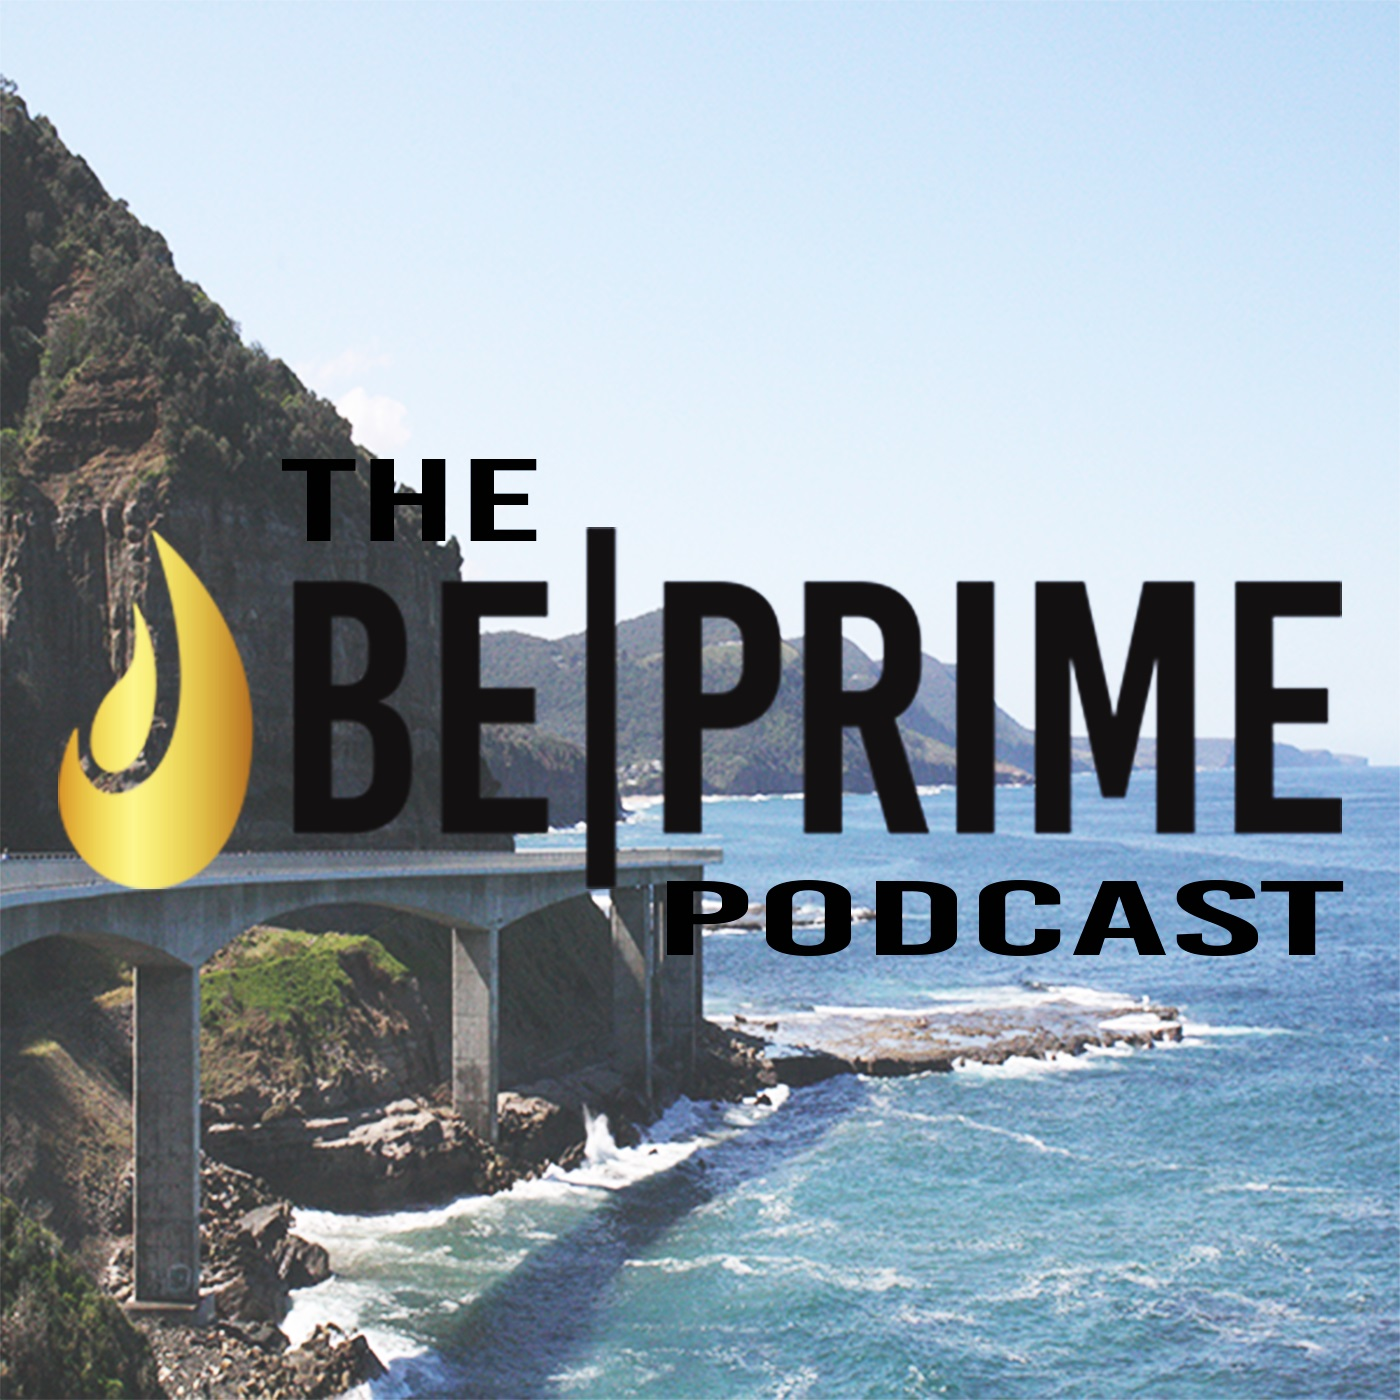 THE BE PRIME PODCAST show art